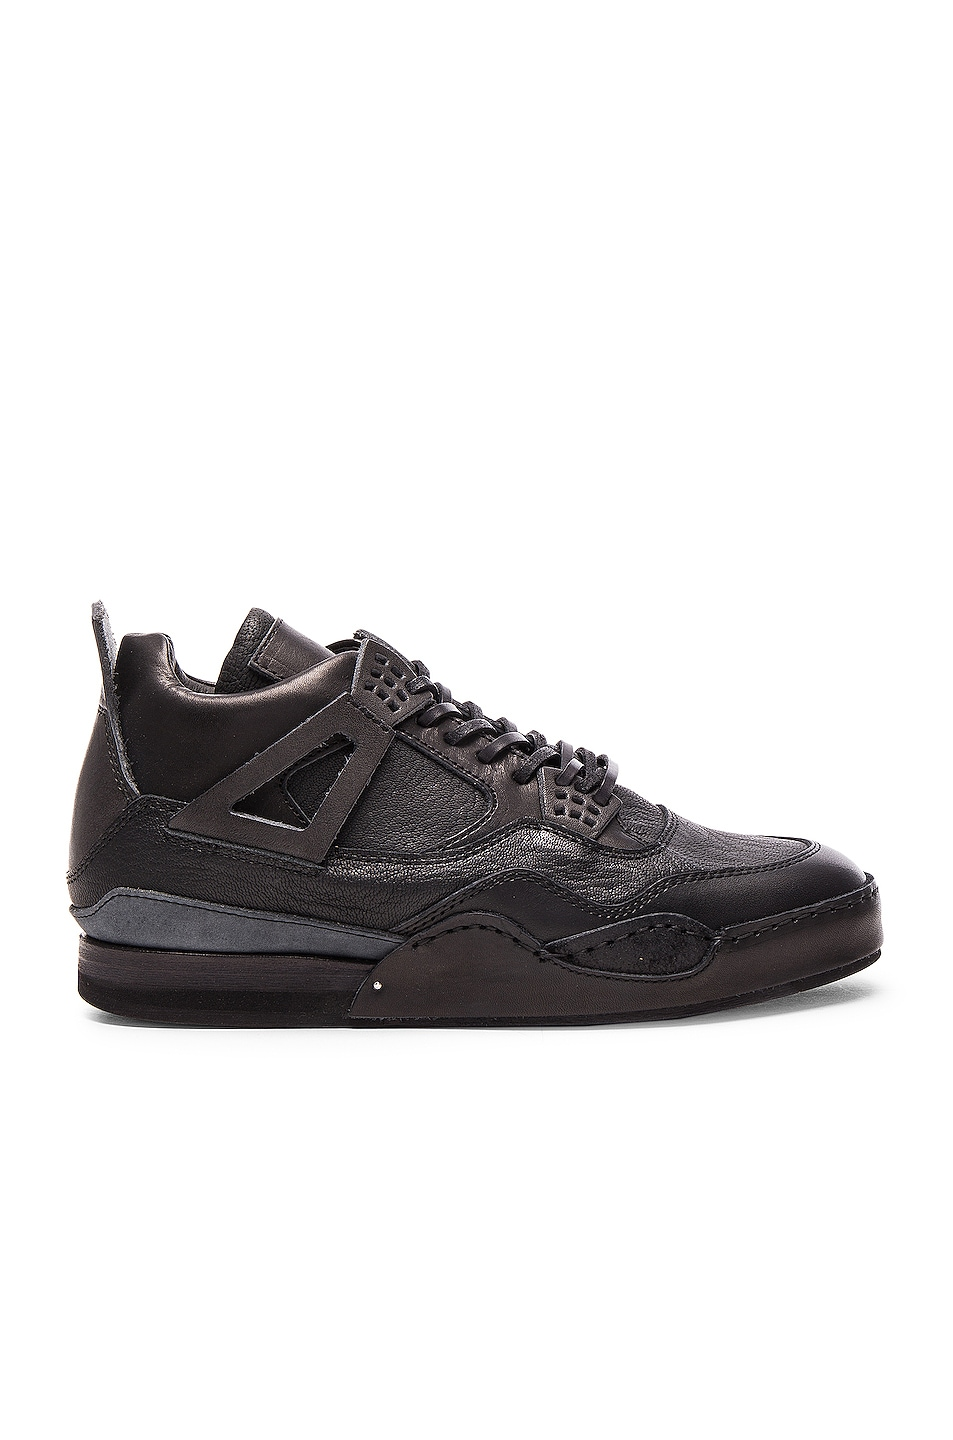 Image 1 of Hender Scheme Manual Industrial Product 10 in Black